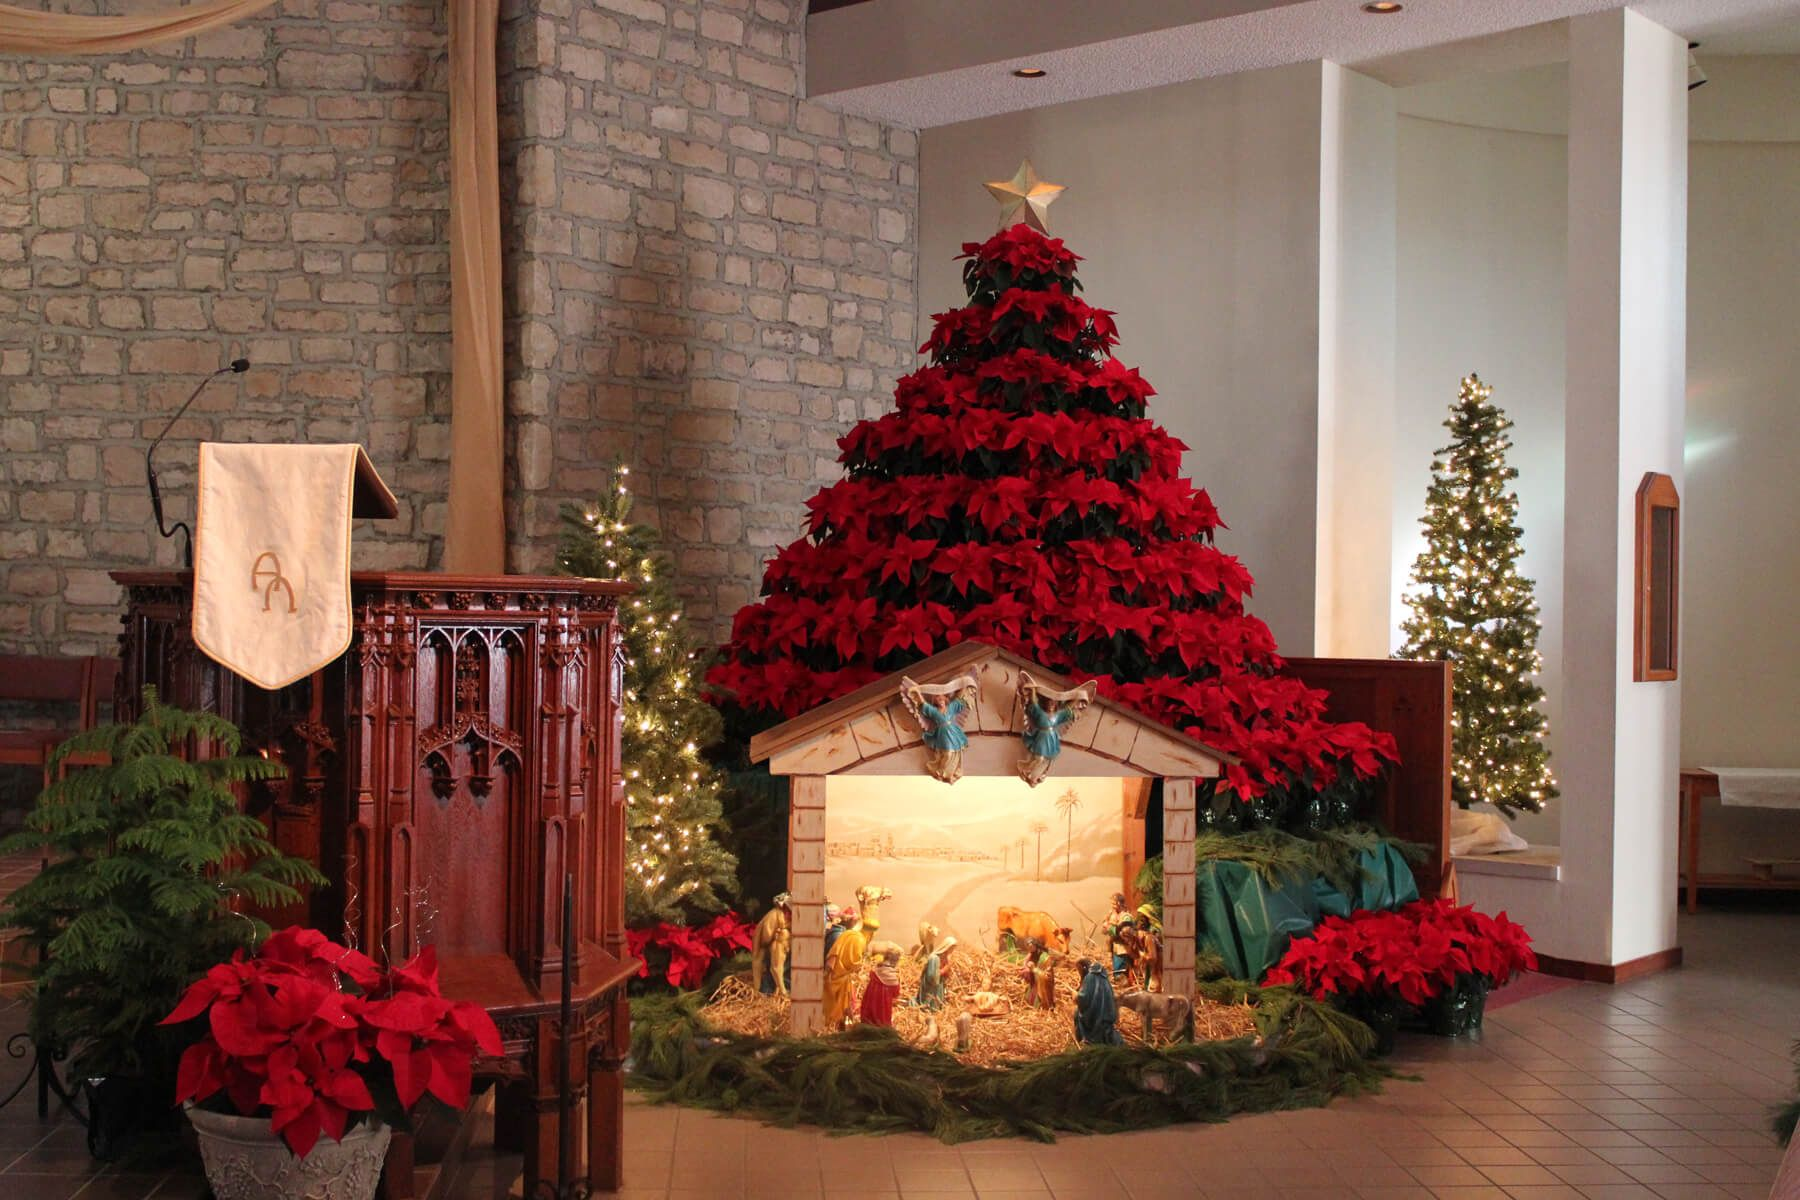 Amazing Christmas Church Decorations Ideas For 2019